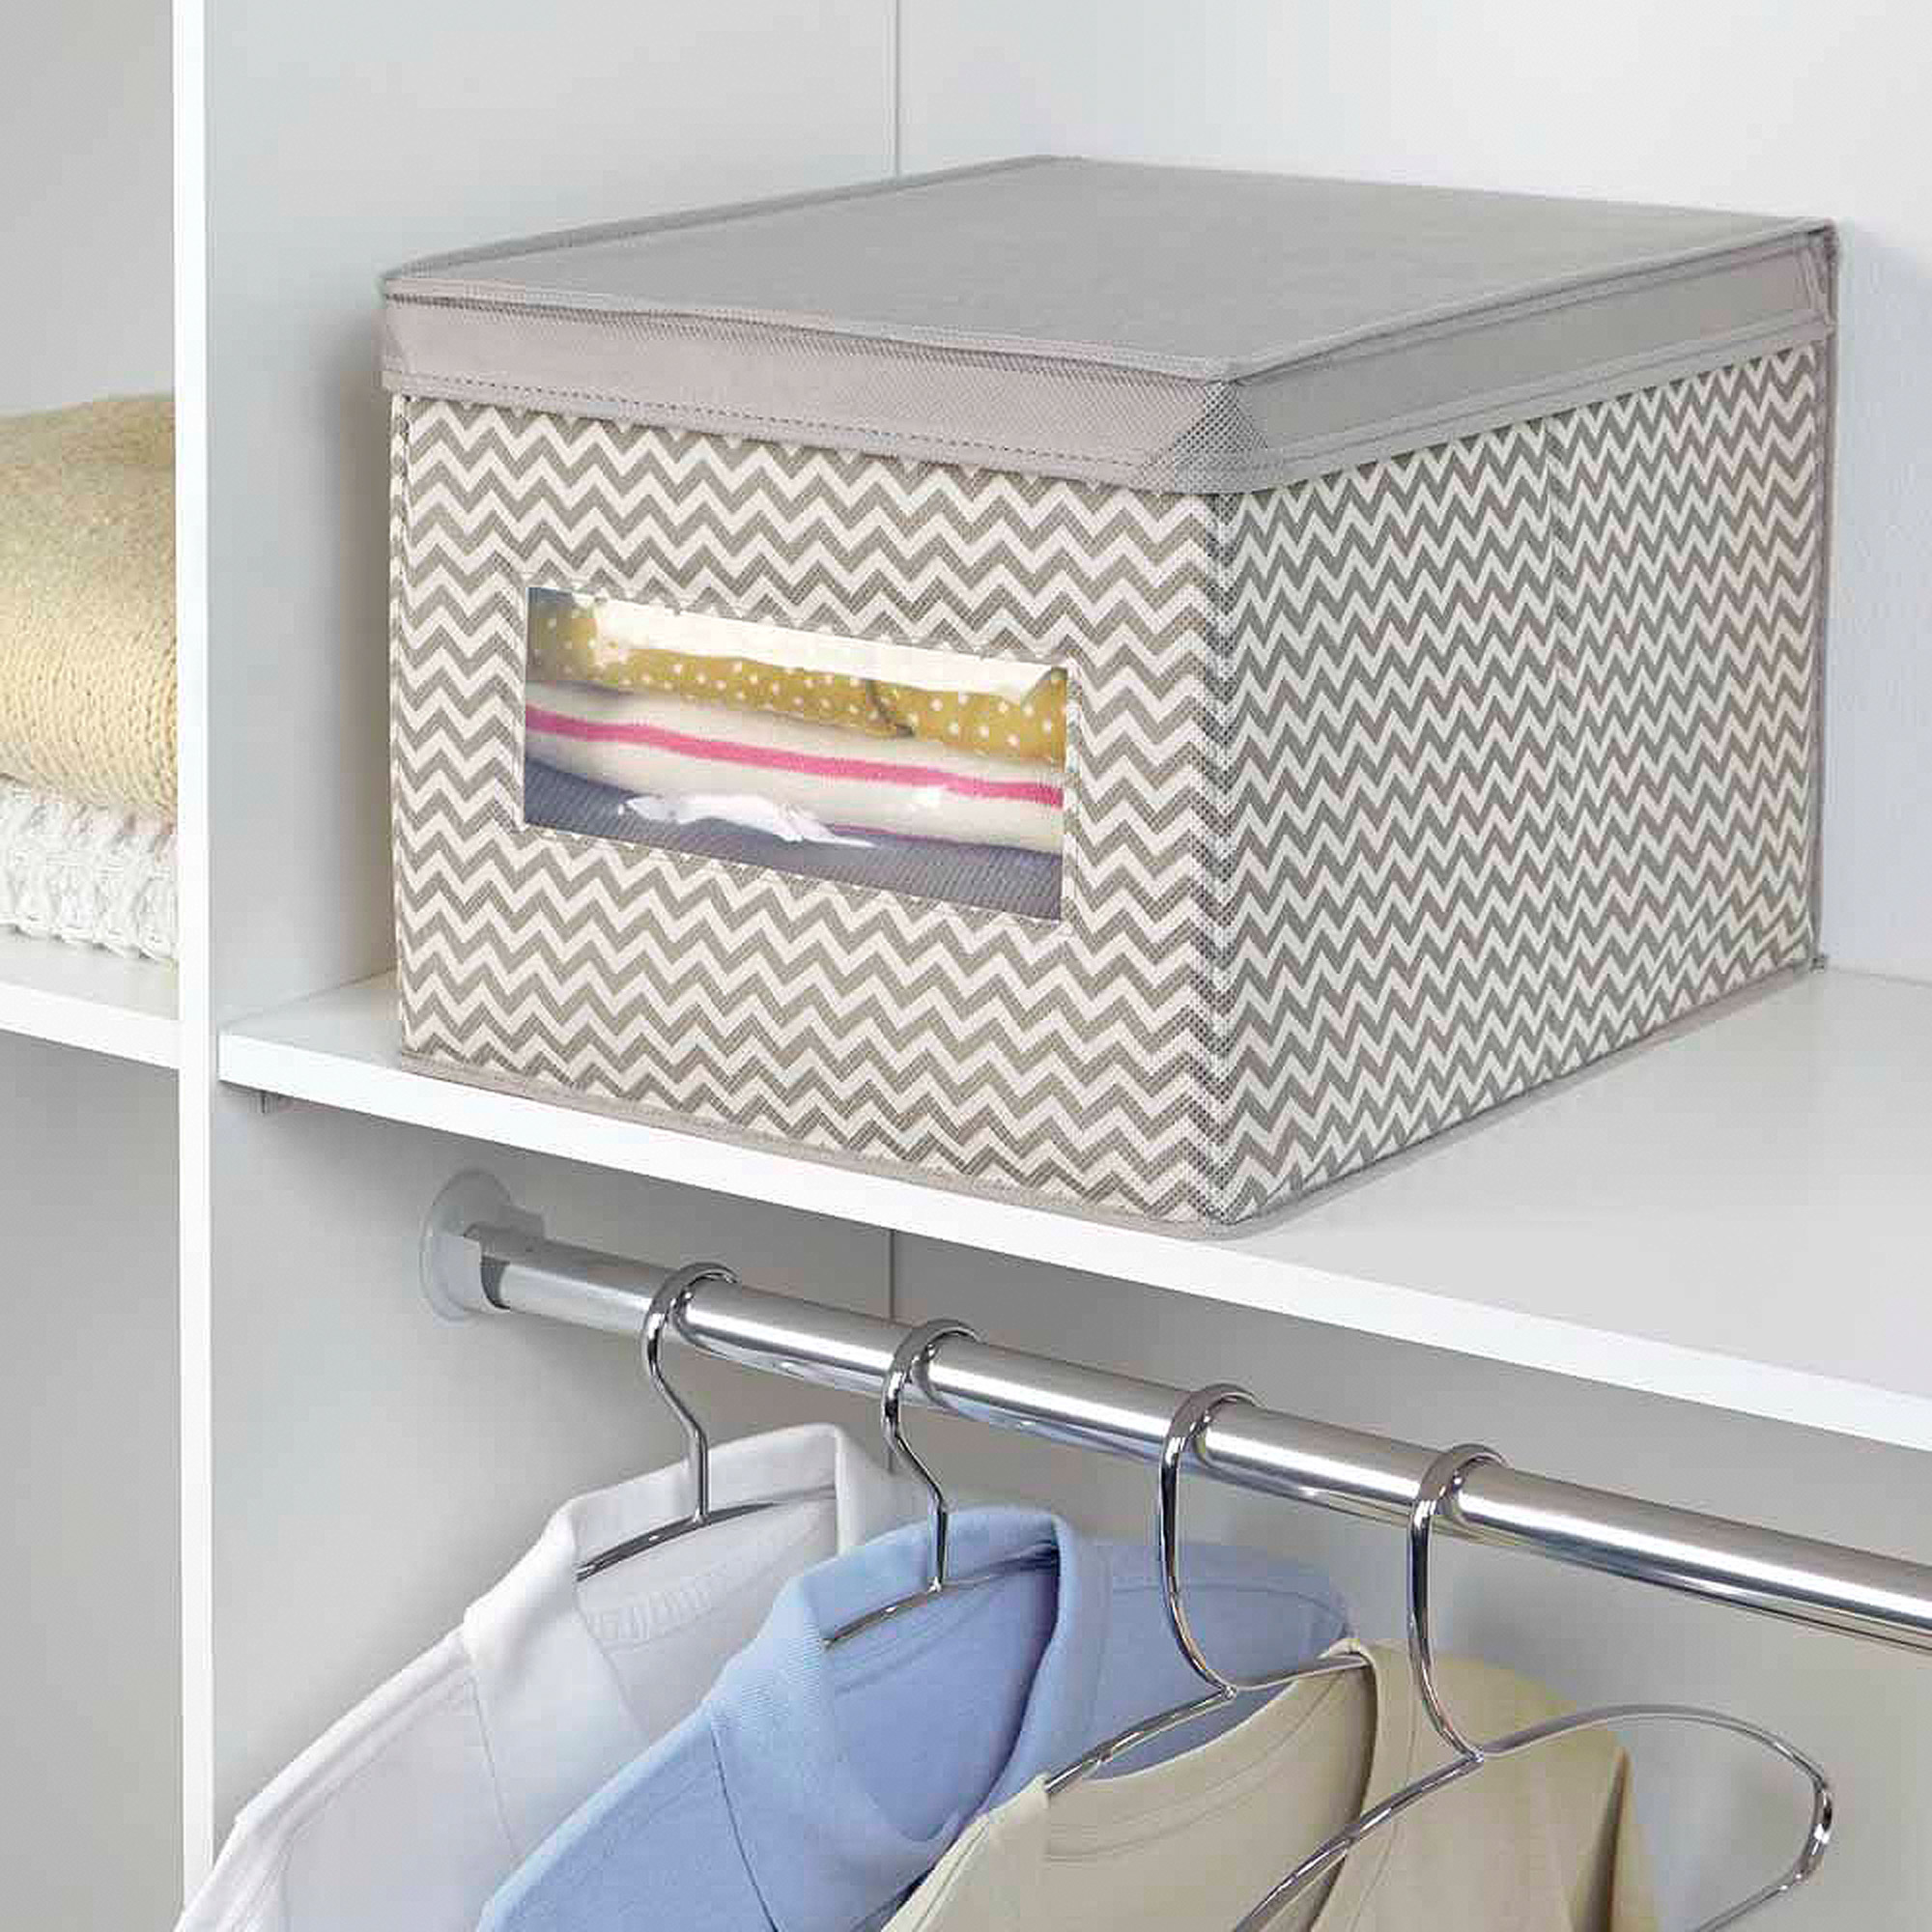 InterDesign Chevron Fabric Closet Dresser Drawer Storage Organizer, Box for Clothing,... by INTERDESIGN